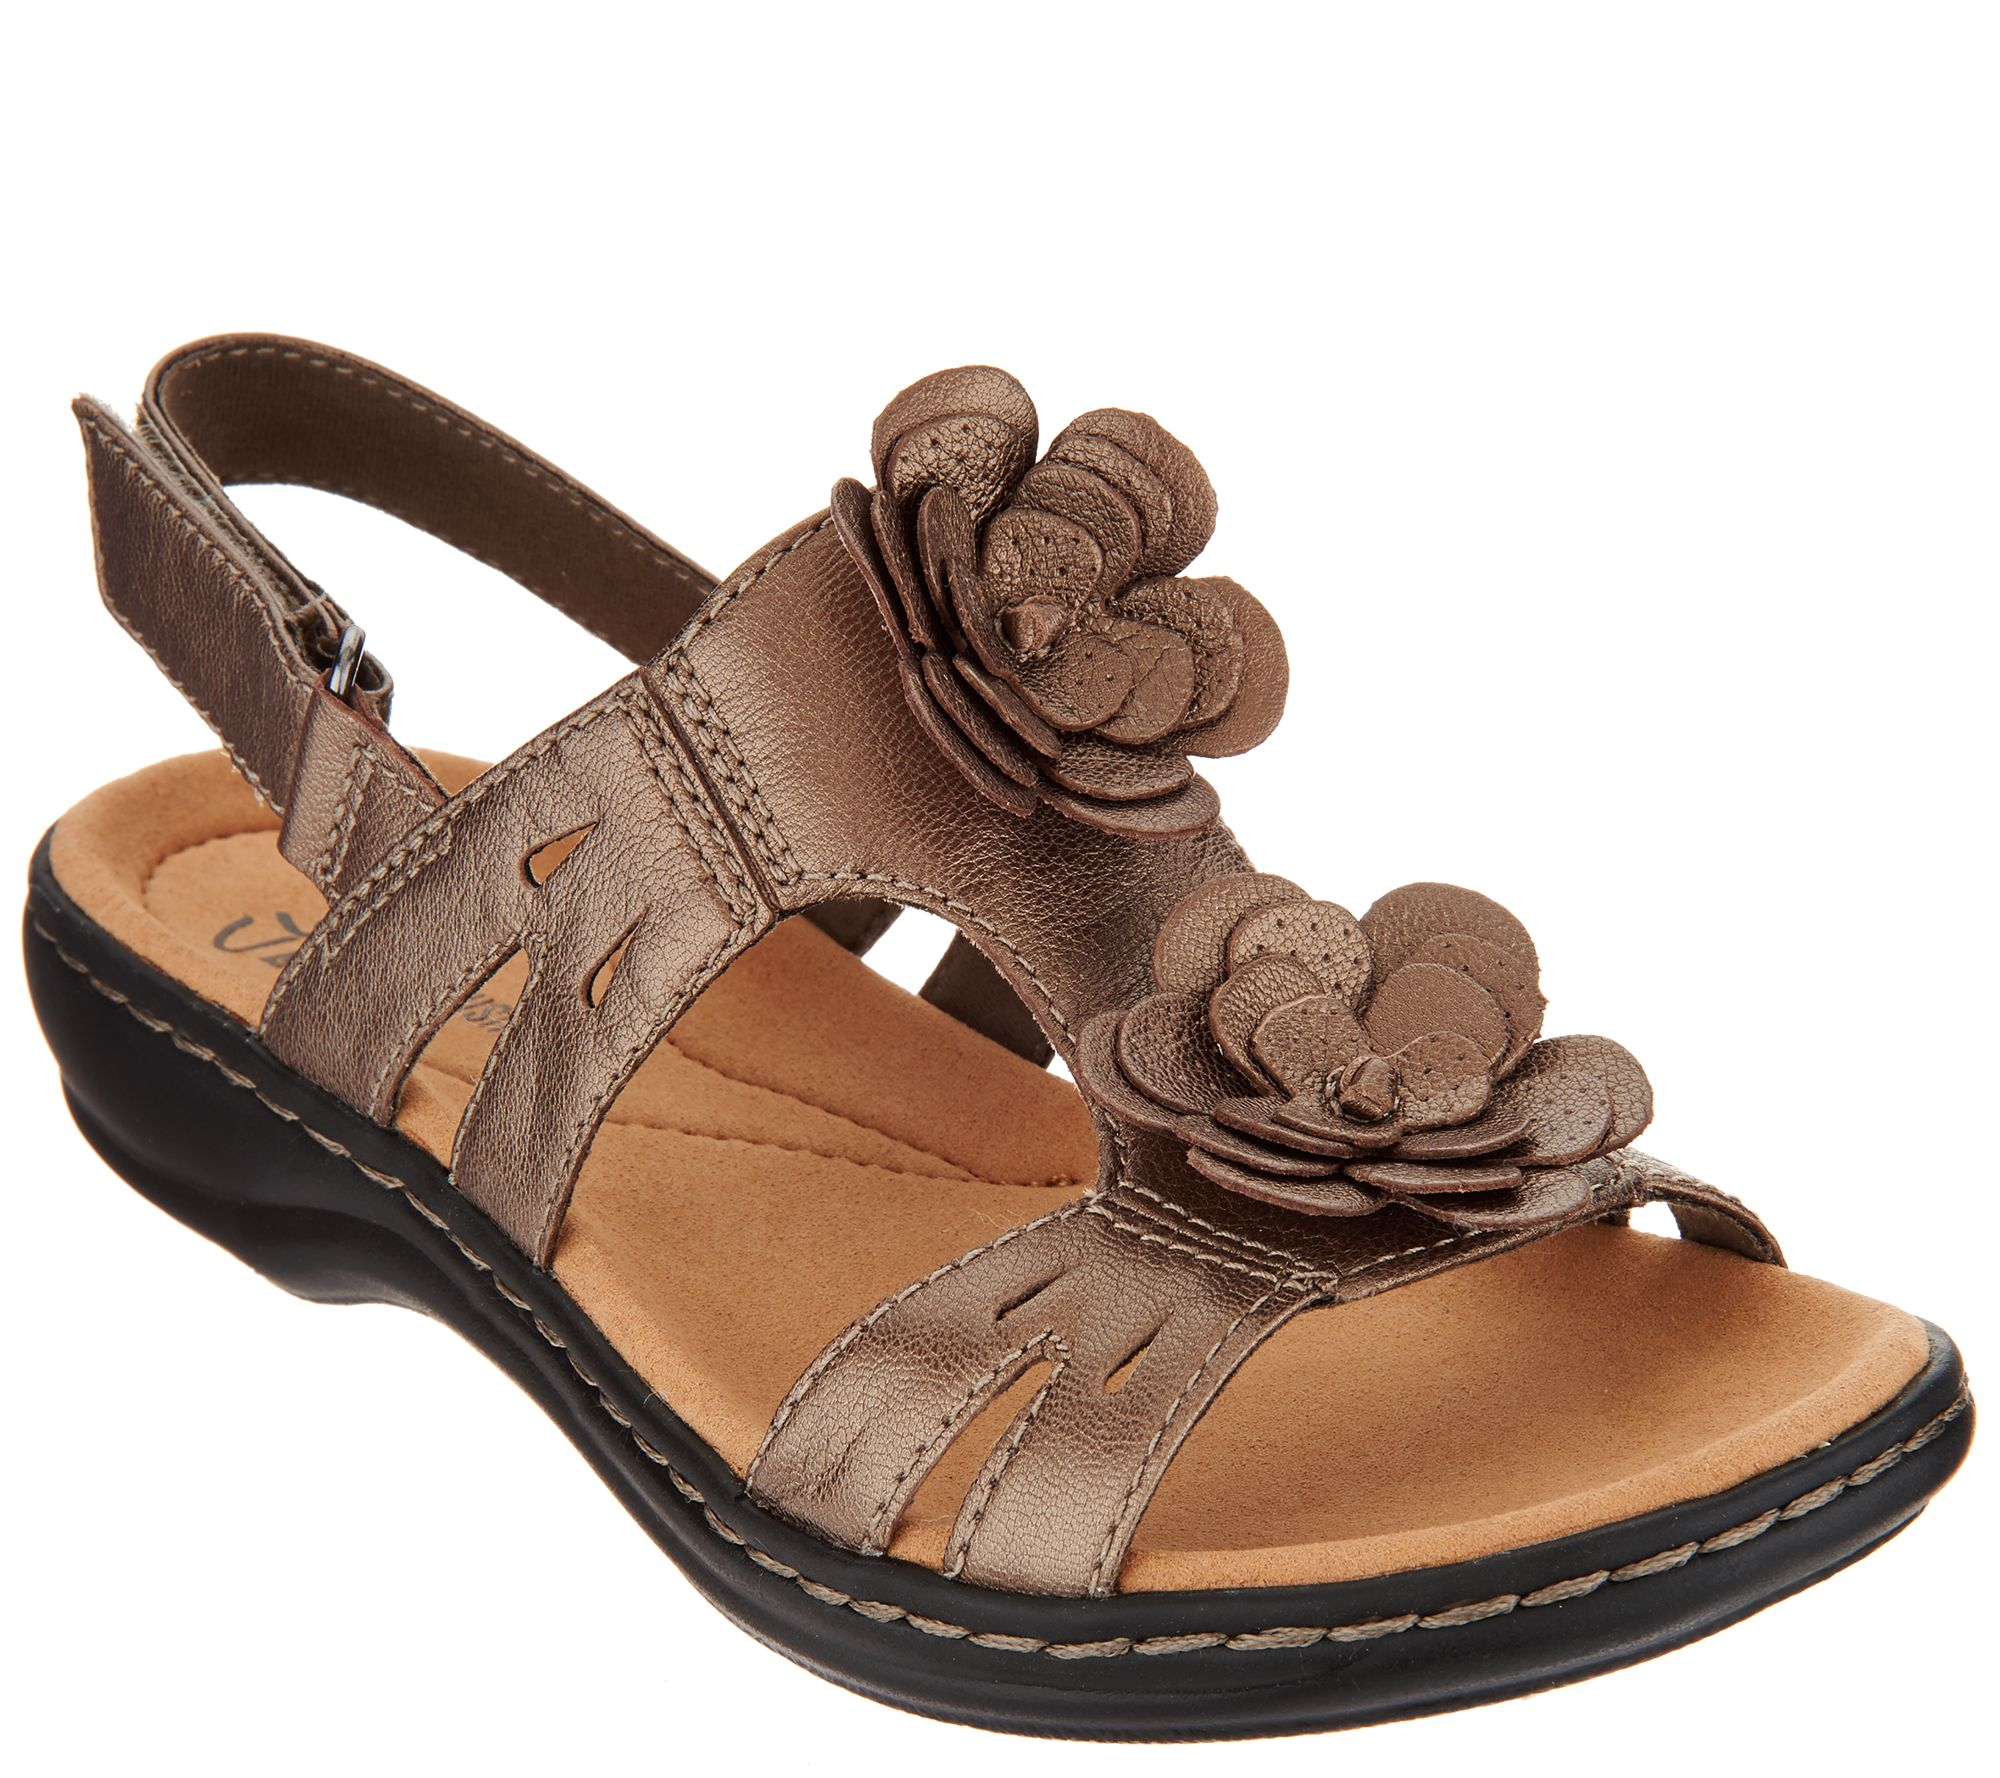 Quot As Is Quot Clarks Leather Lightweight Sandals Leisa Claytin